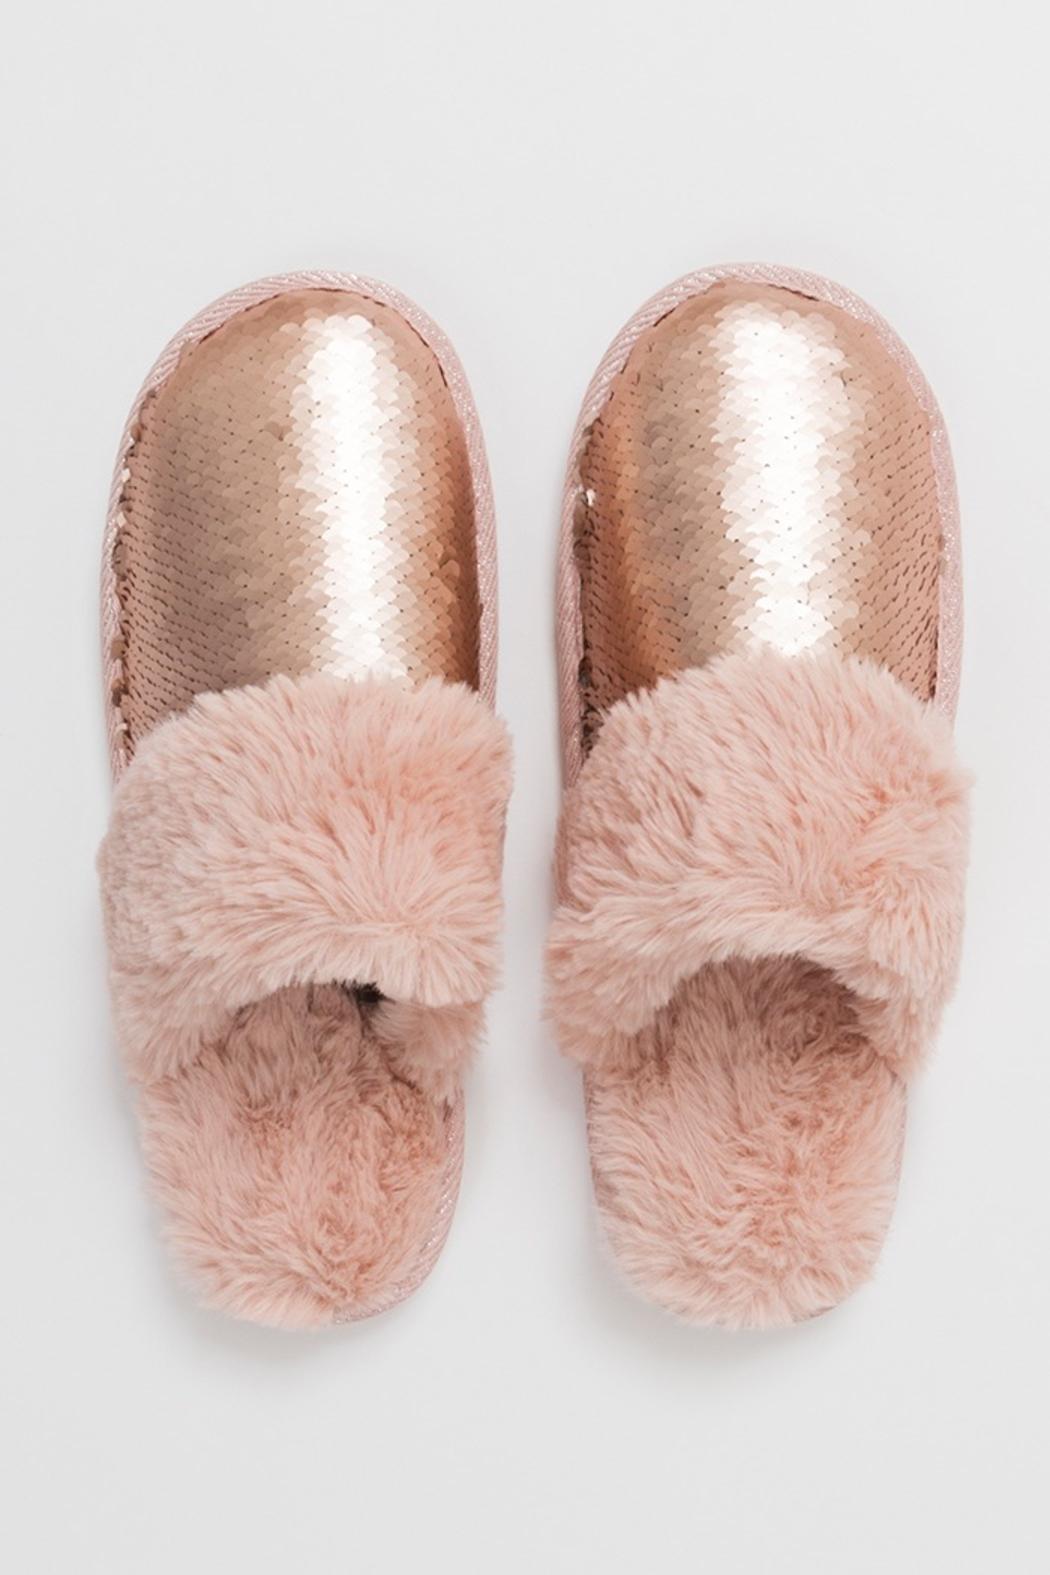 Pia Rossini KASHA SLIPPERS - Main Image